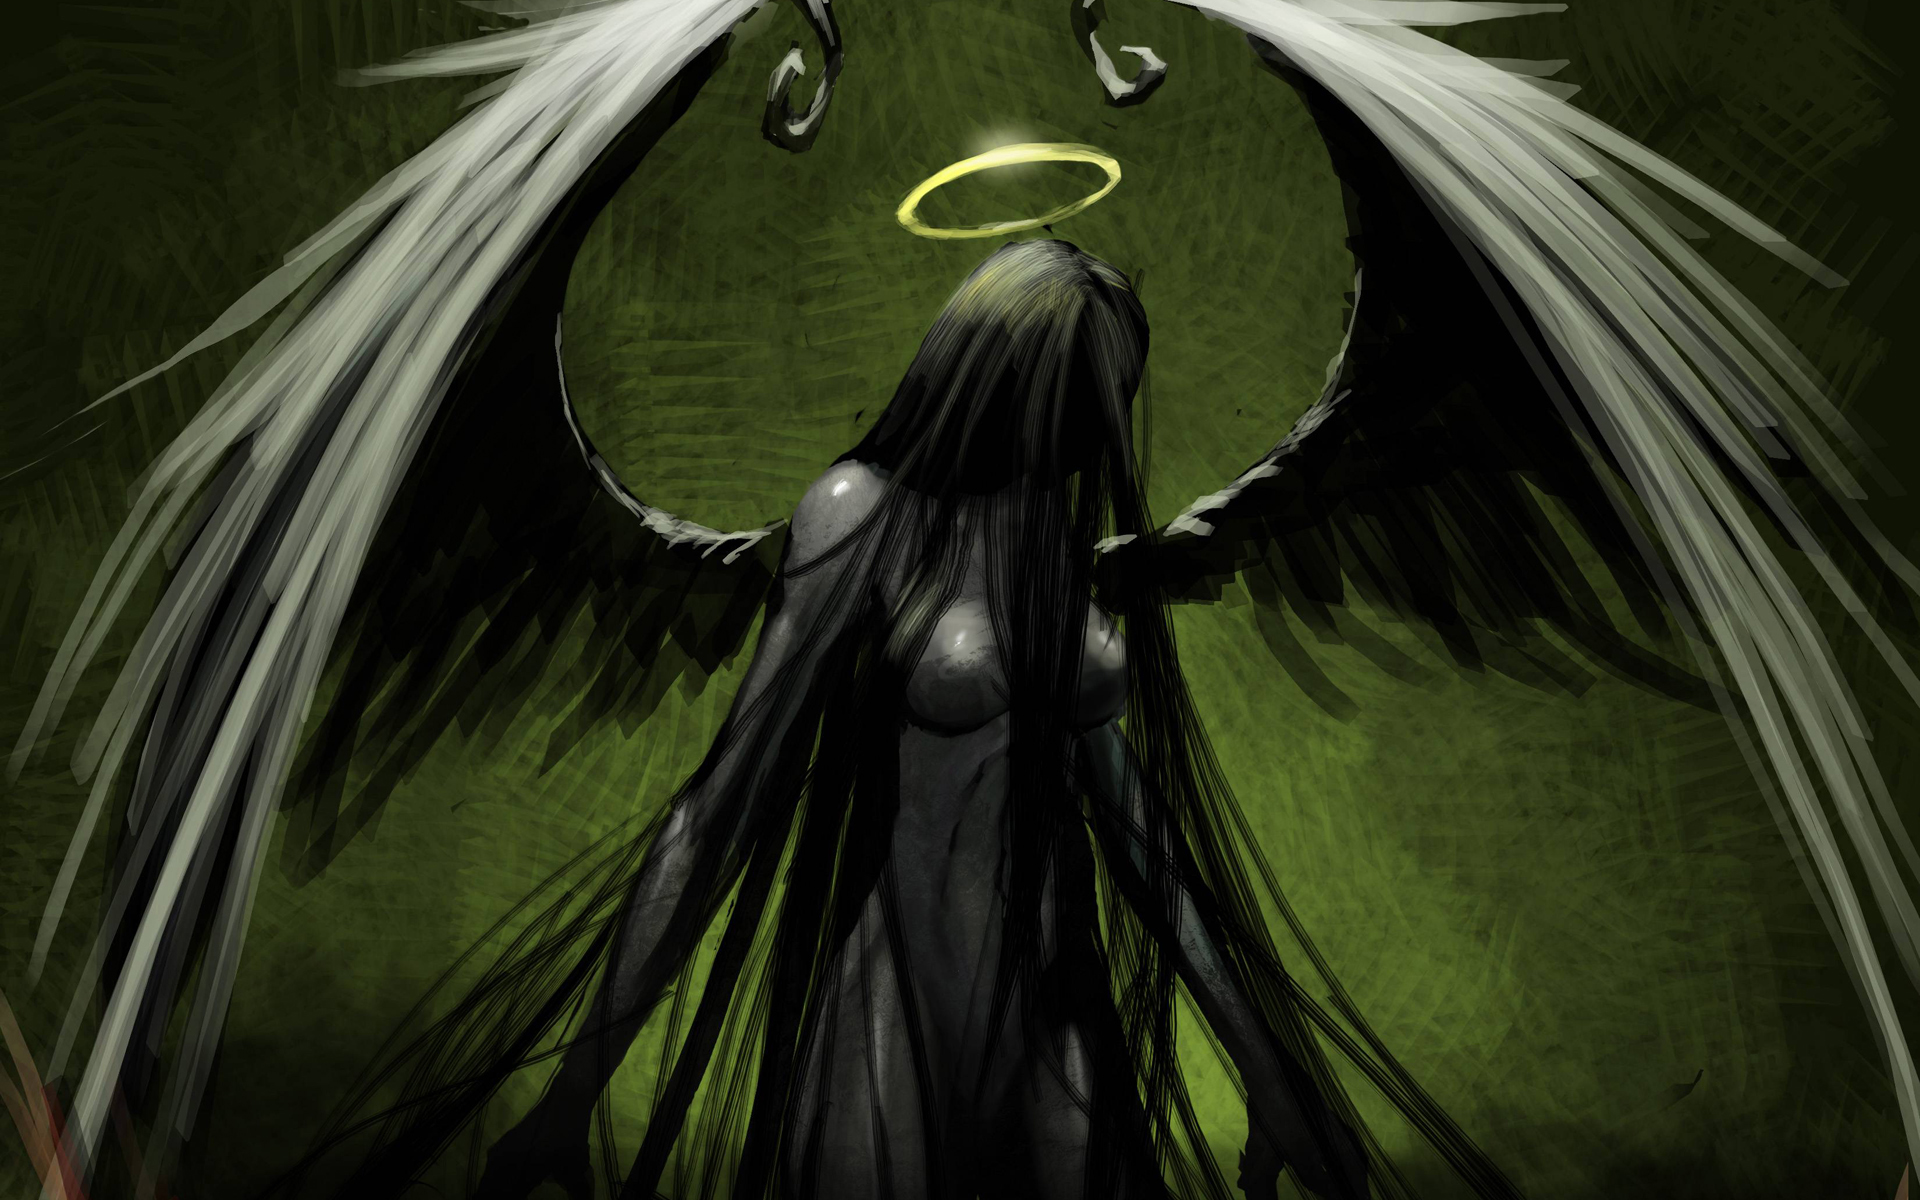 Angel Green Drawing Halo Wings gothic dark